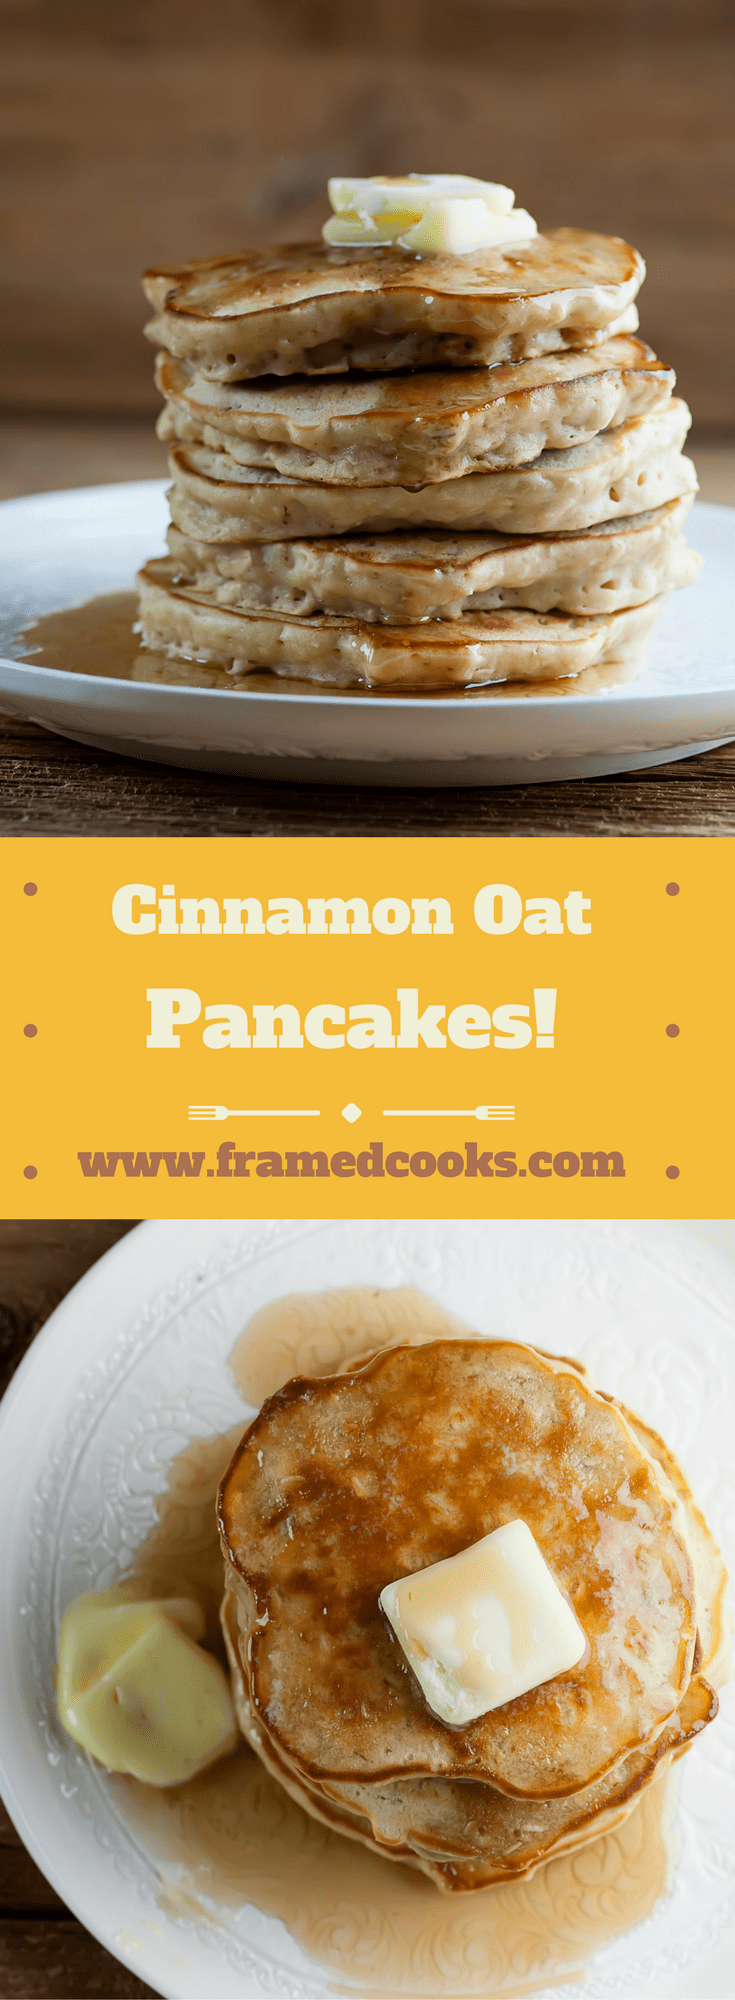 This recipe for cinnamon oat pancakes will take your breakfast to a whole new level.  Don't forget the Vermont maple syrup!